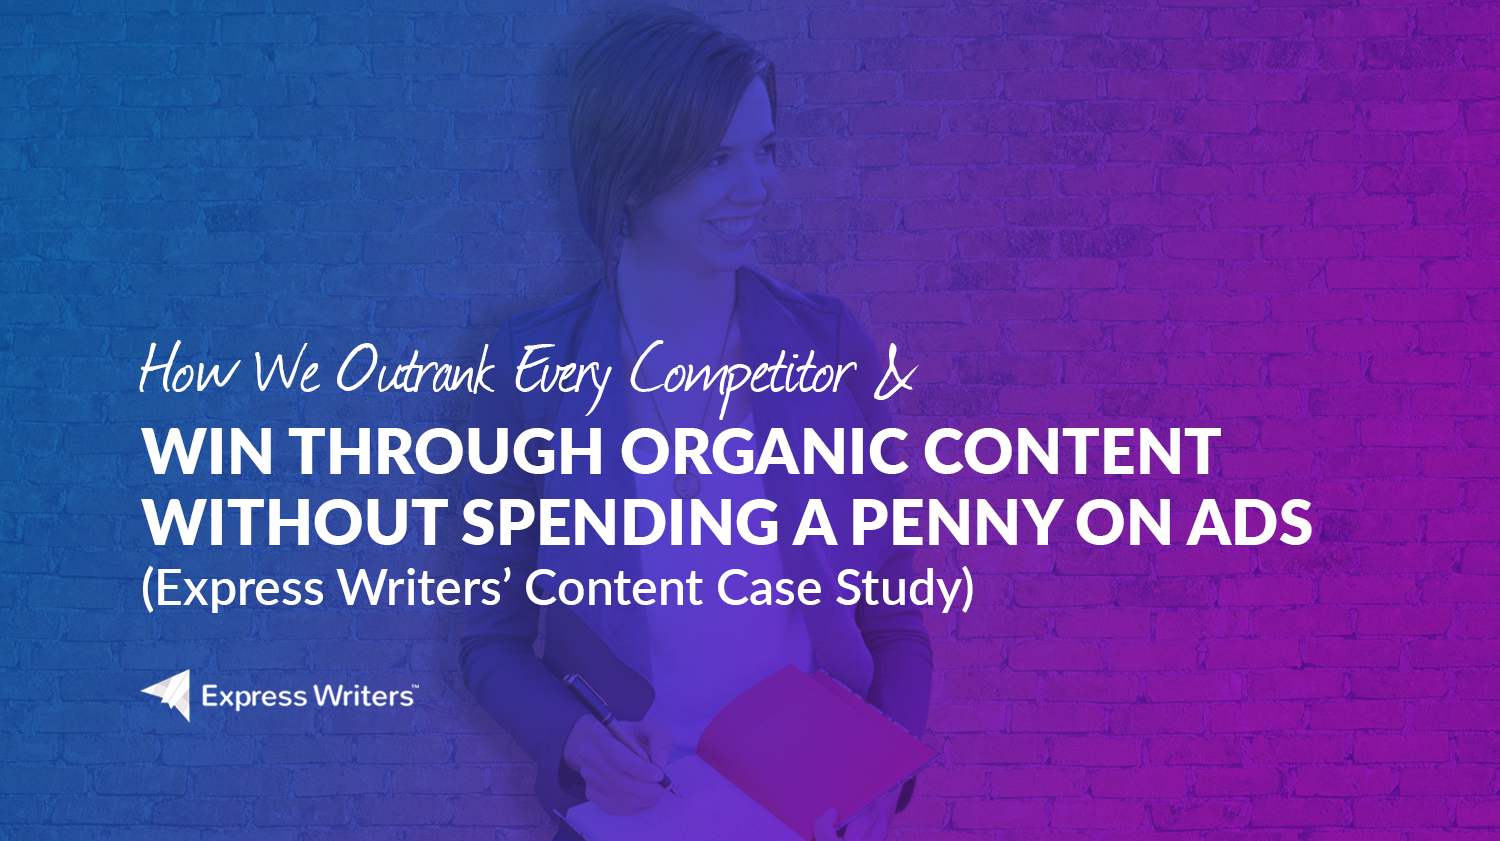 express writers content case study